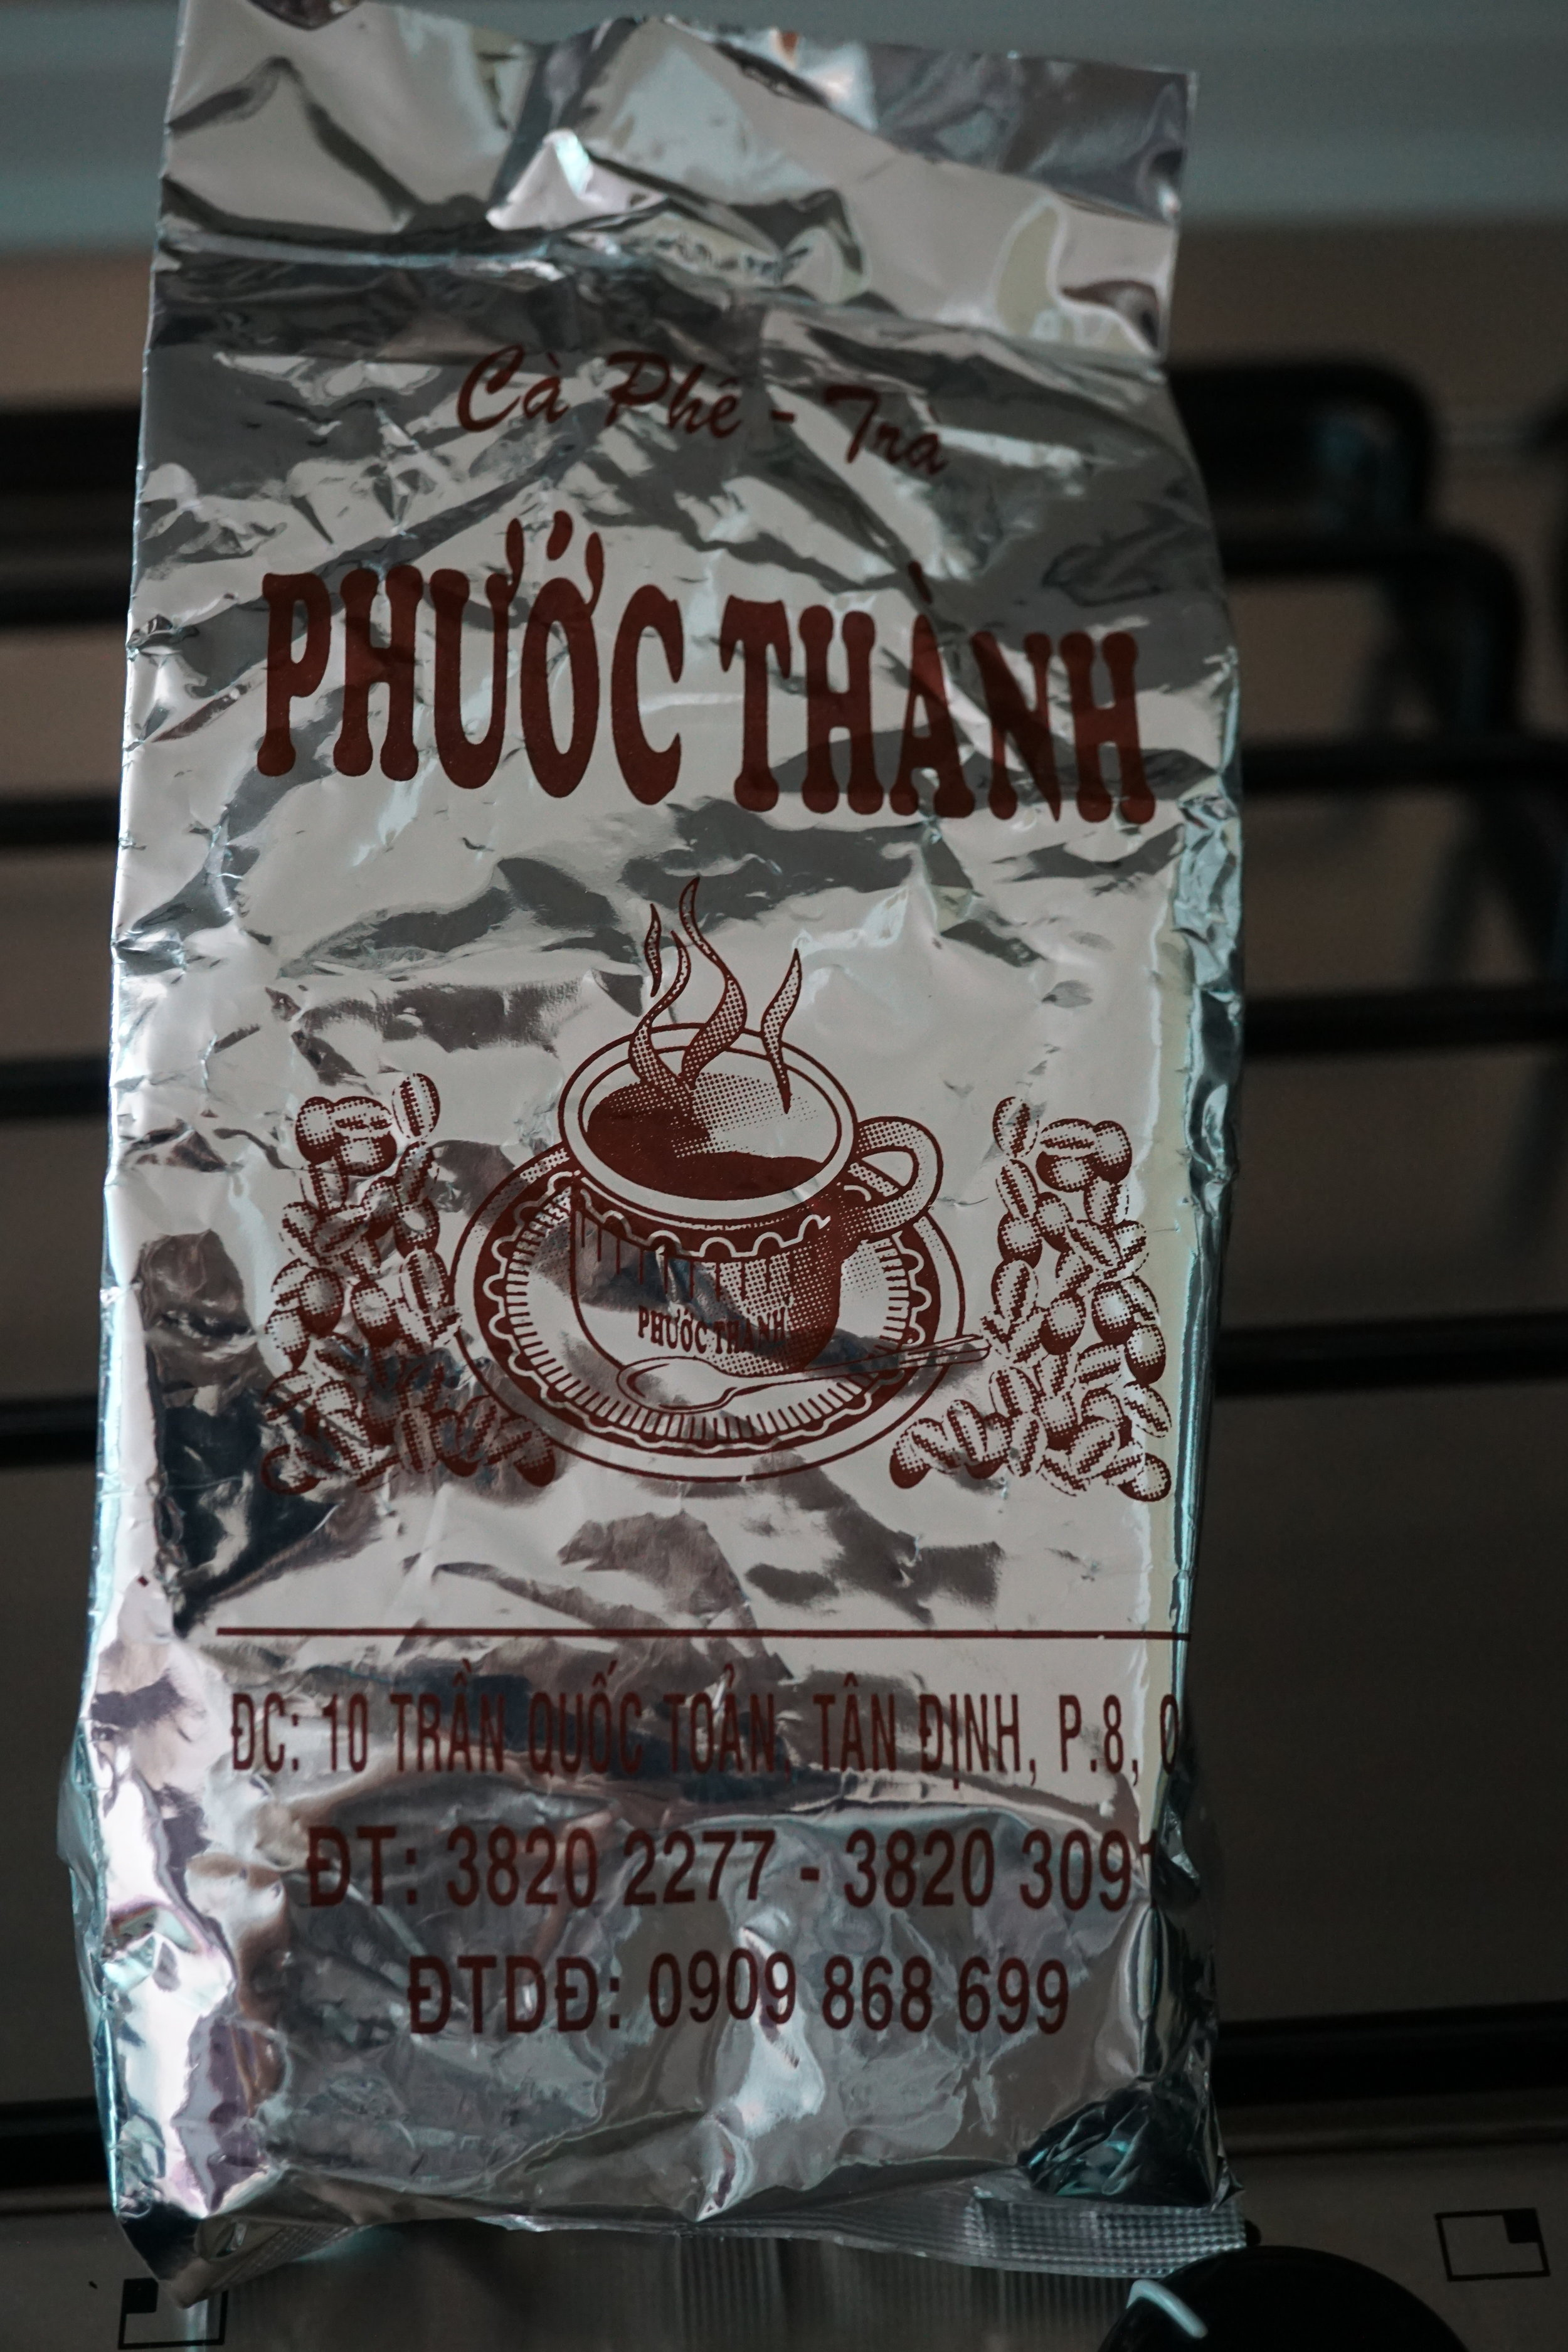 Phuoc Thanh - Vietnamese coffee… oh my gawd… If you have never tried the rich velvetiness of a typical drip Vietnamese coffee, you are missing out on the rich caramel chocolate flavors! Normally served with condensed milk but I like to drink this black. A friend of mine brought this tiny bag of beans from a trip and I savor every bean so much. (If you're visiting Vietnam, please send me some!)